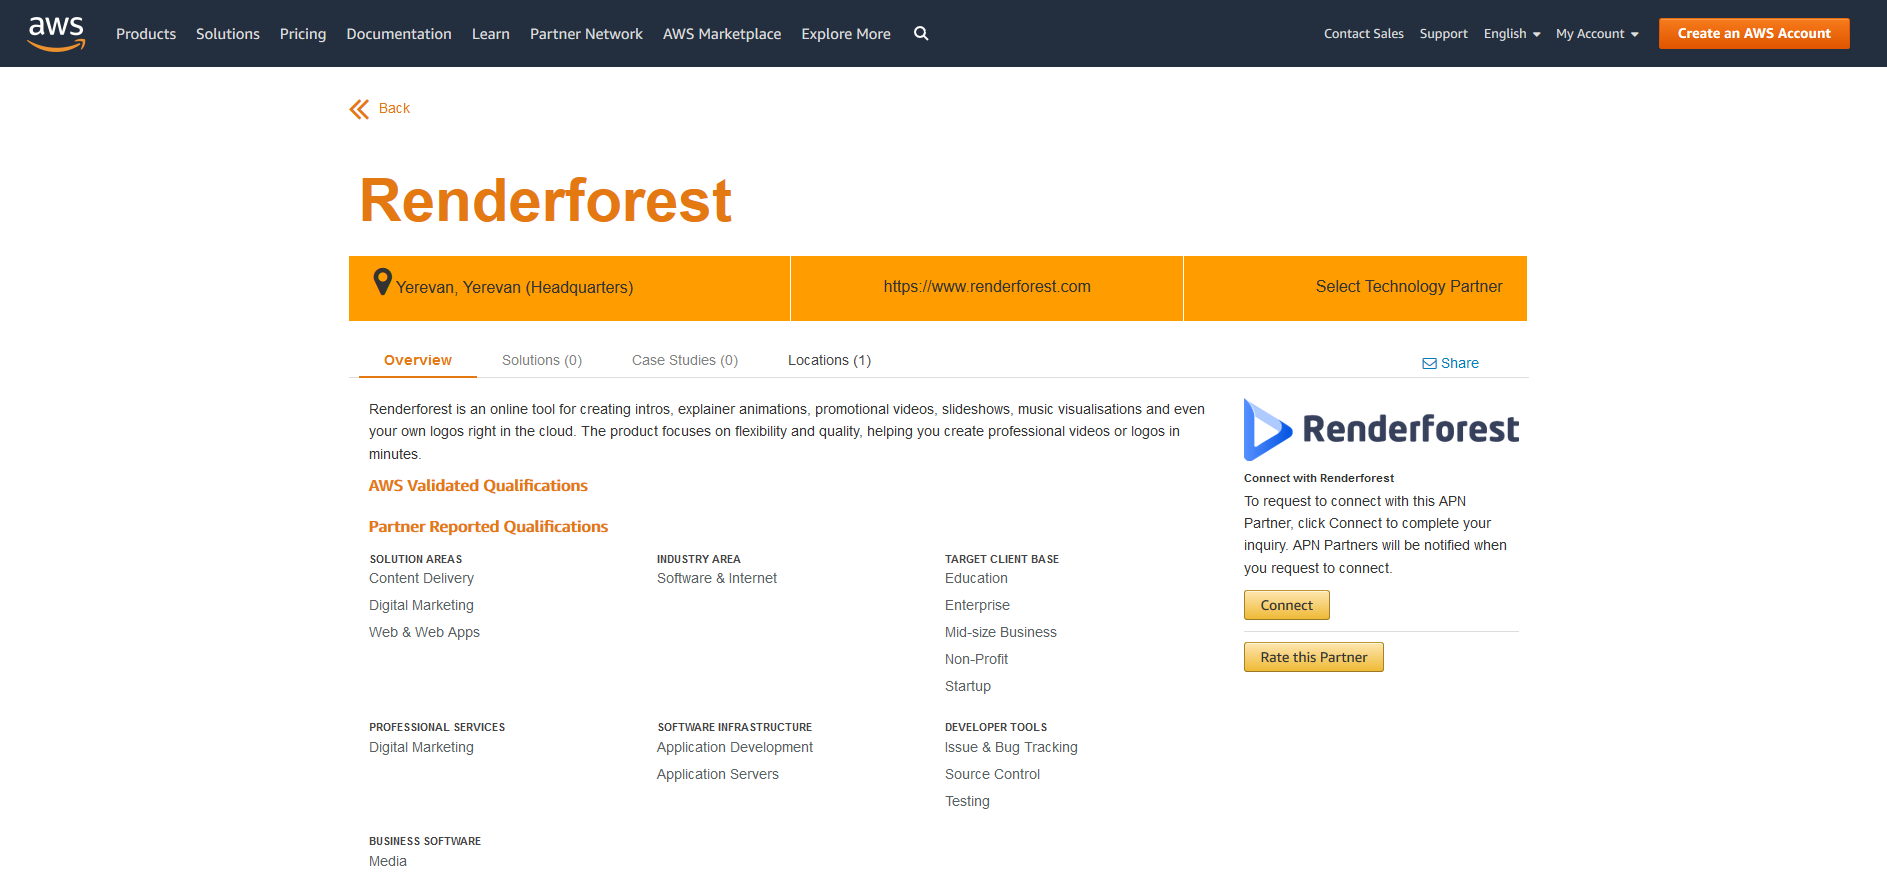 Renderforest partners with Amazon